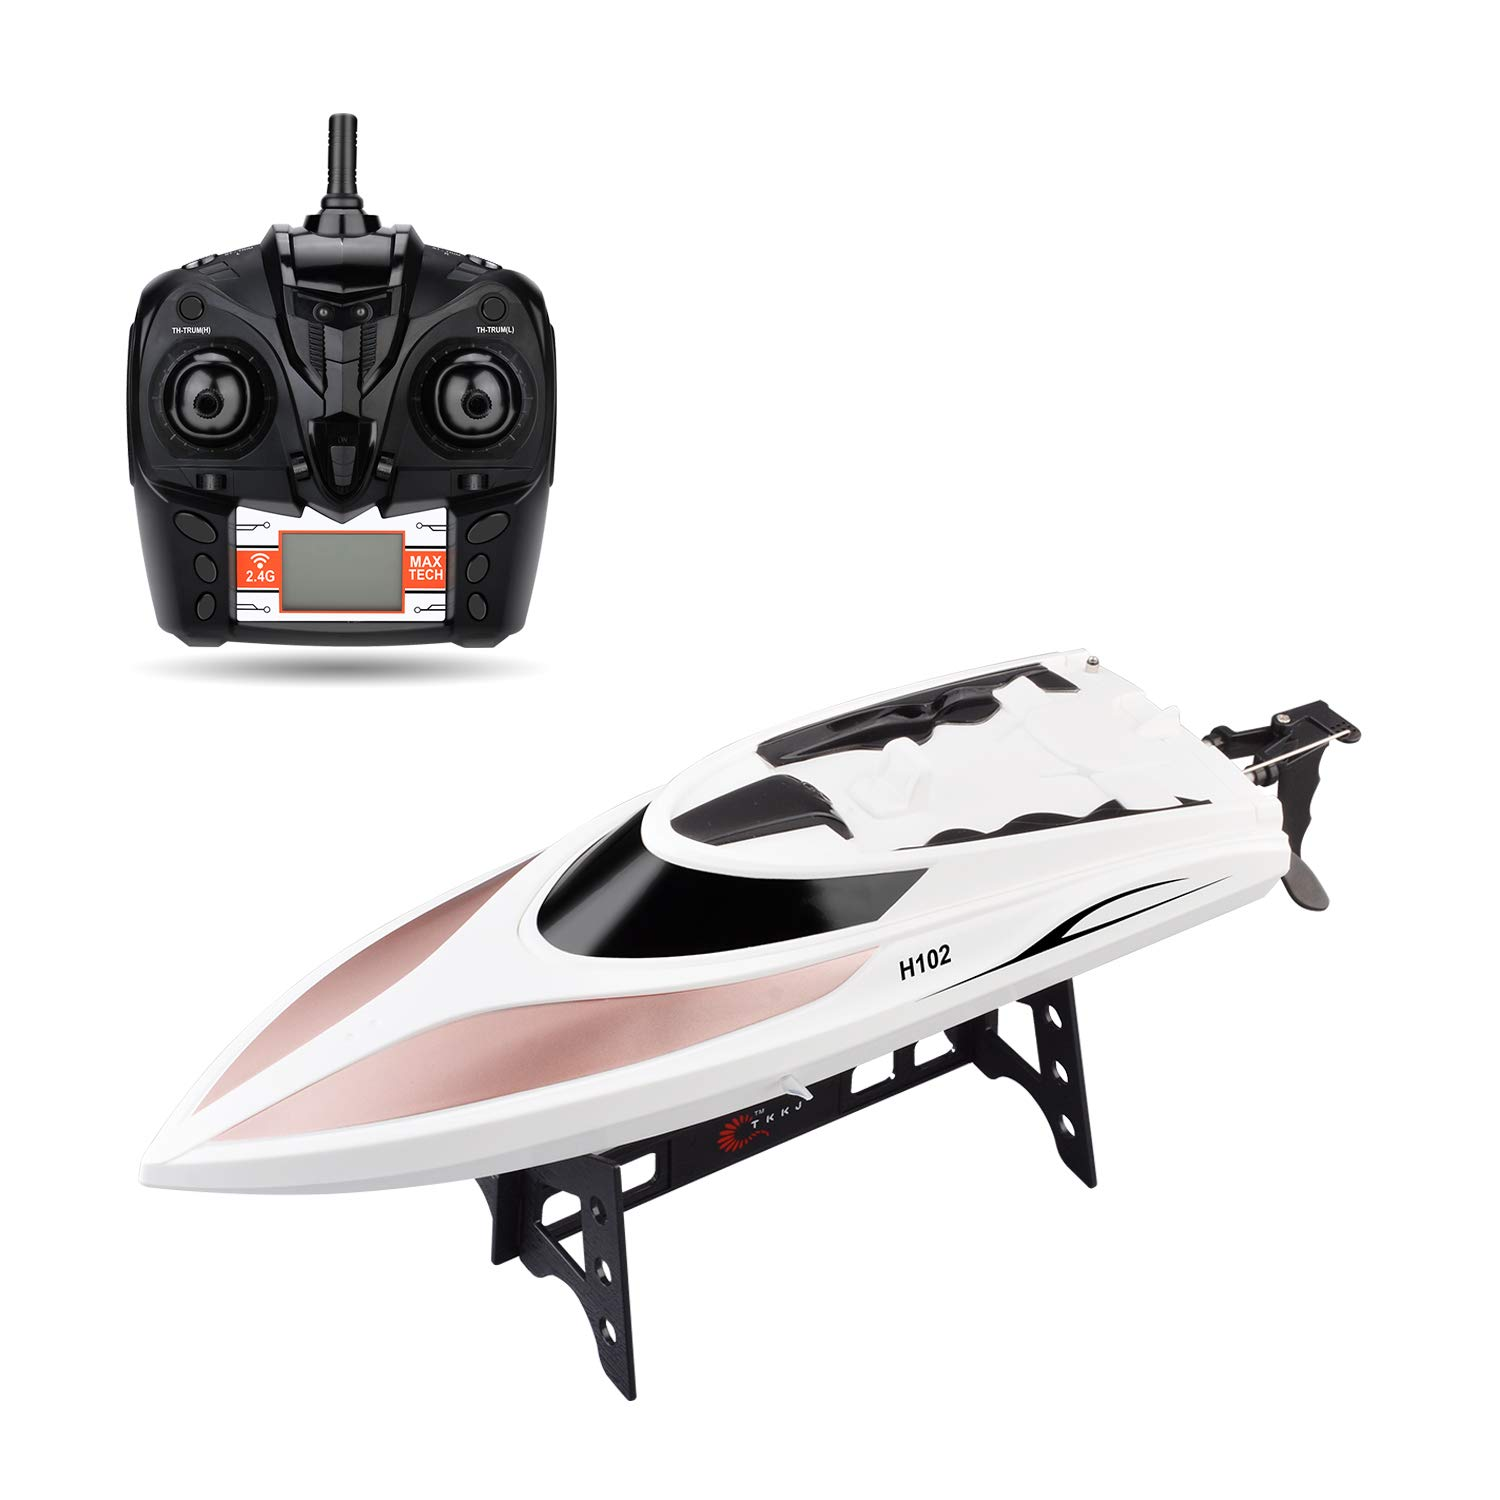 STOTOY TY62 RC Boat Remote Control Electric Racing Boat 2.4GHz 40KM/H High Speed Automatically 180 Degree Flipping Transmitter